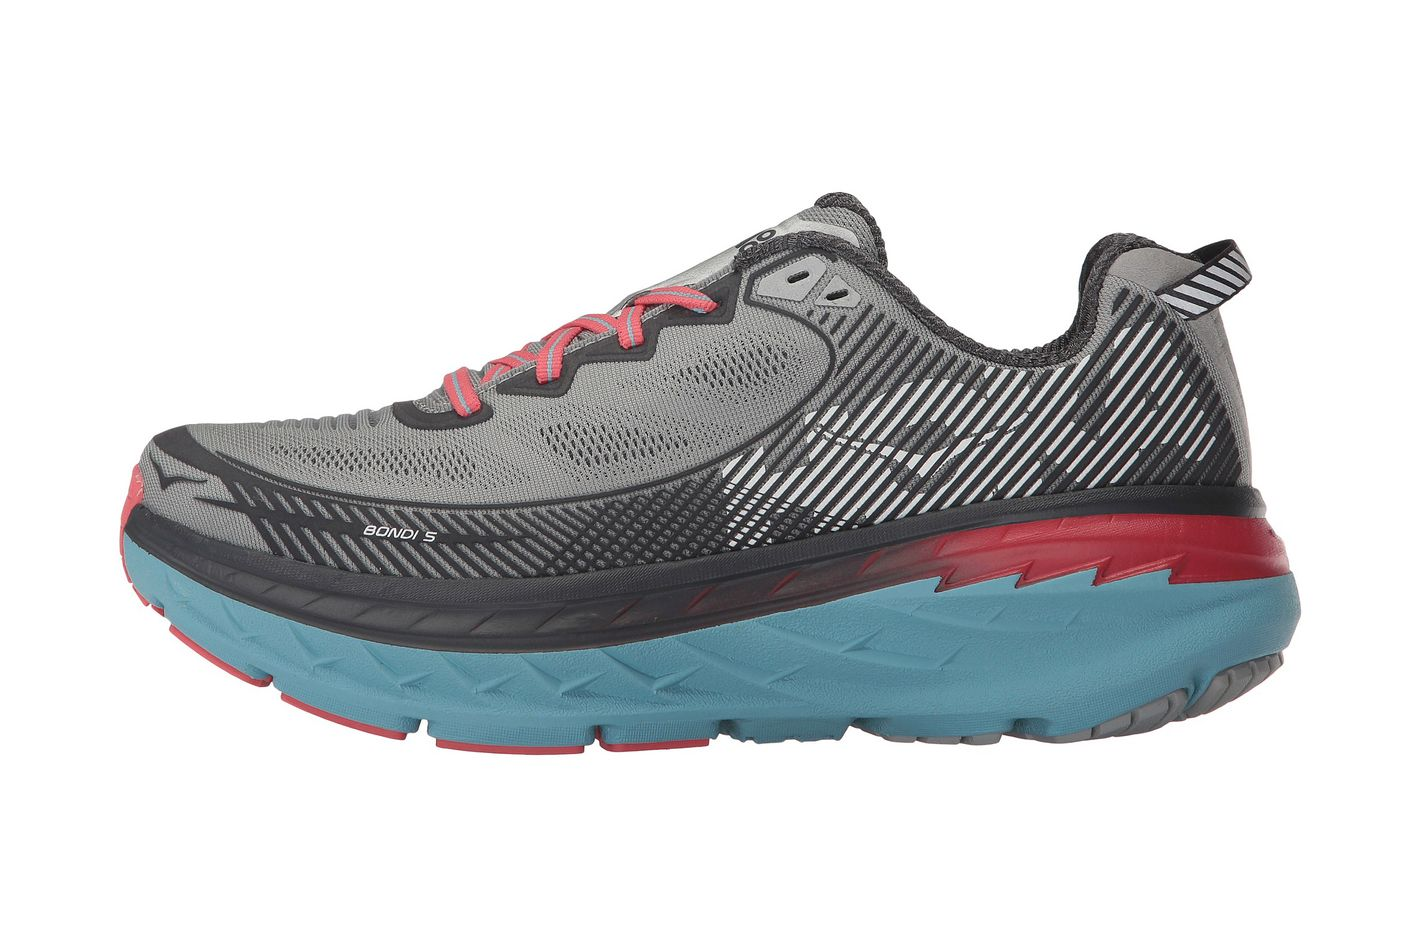 Best Everyday Shoes For Overpronation